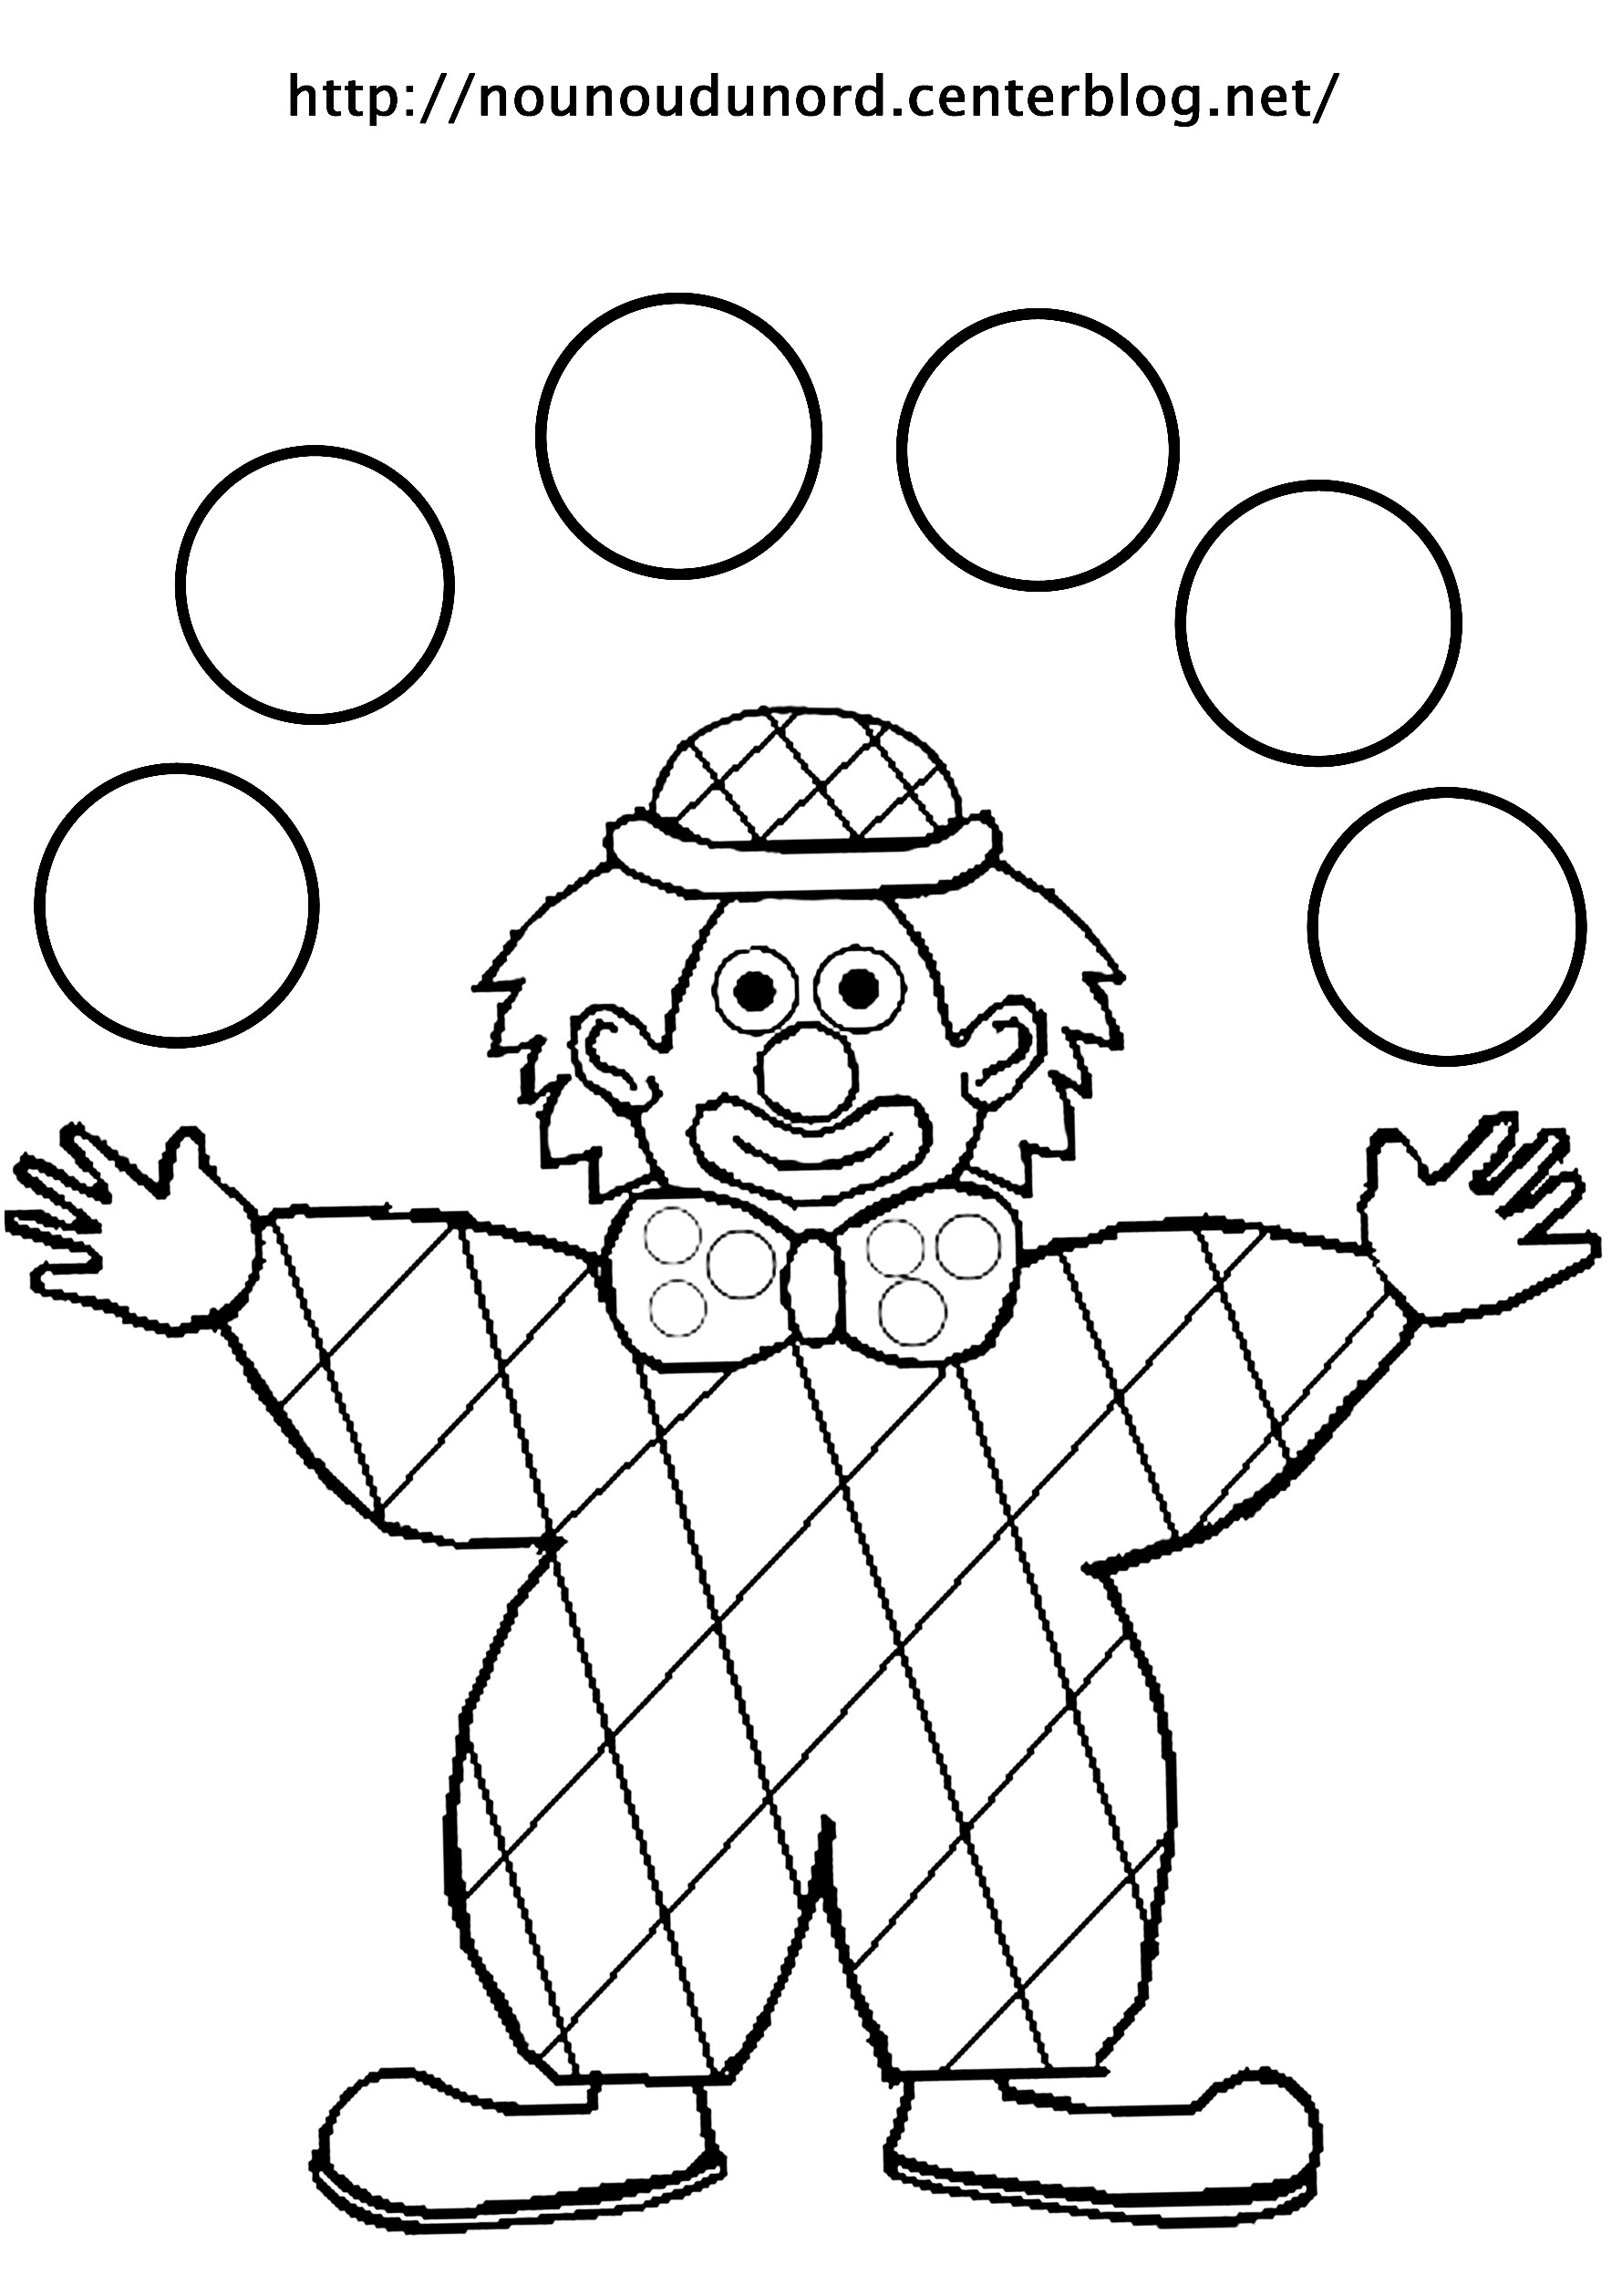 Coloriage De Clown Qui Fait Peur A Imprimer.Dessin A Colorier Baggy Le Clown